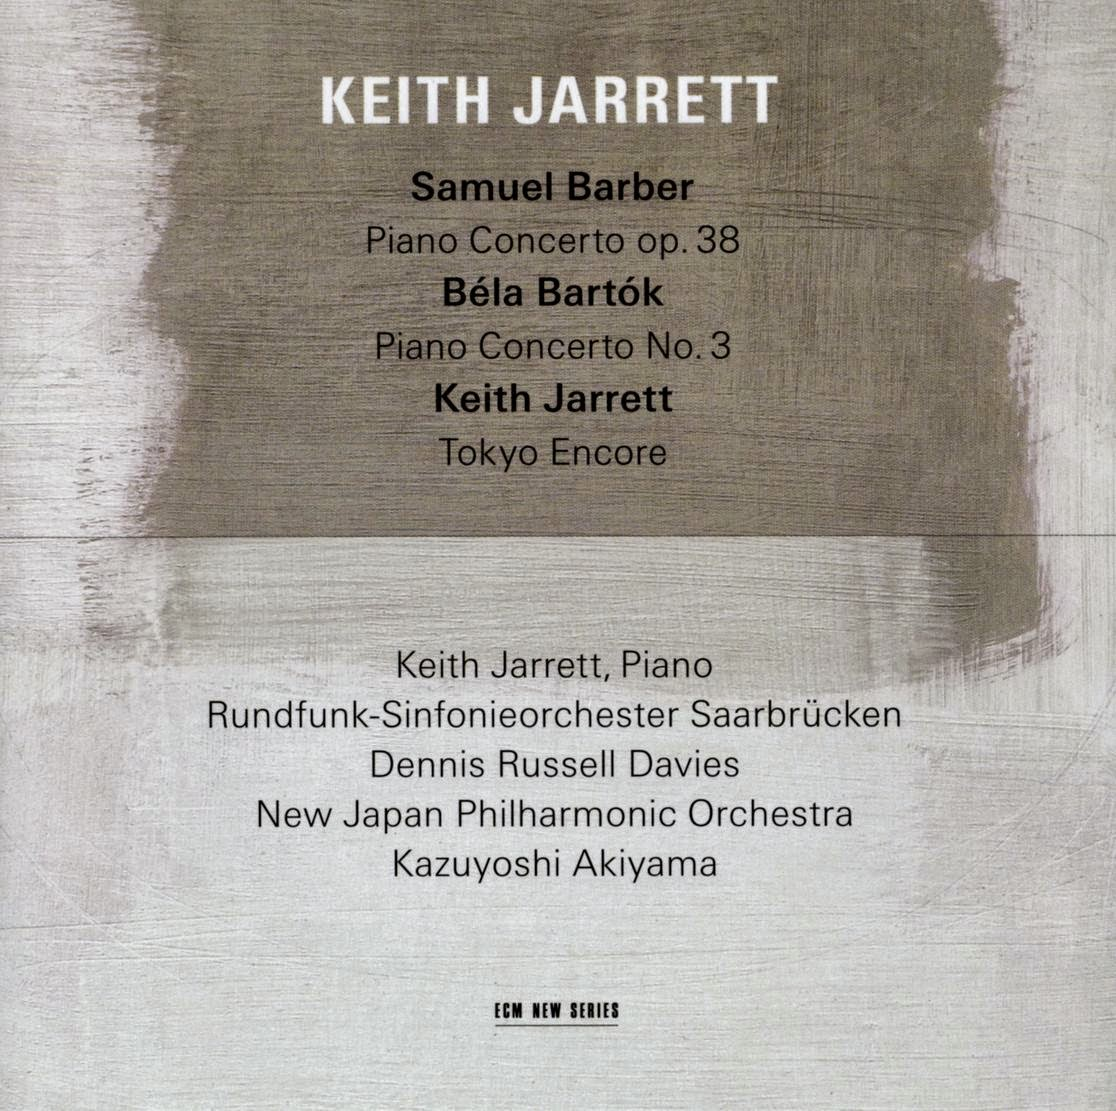 gapplegate classical modern music review keith jarrett barber  keith jarrett barber piano concerto bartok piano concerto no 3